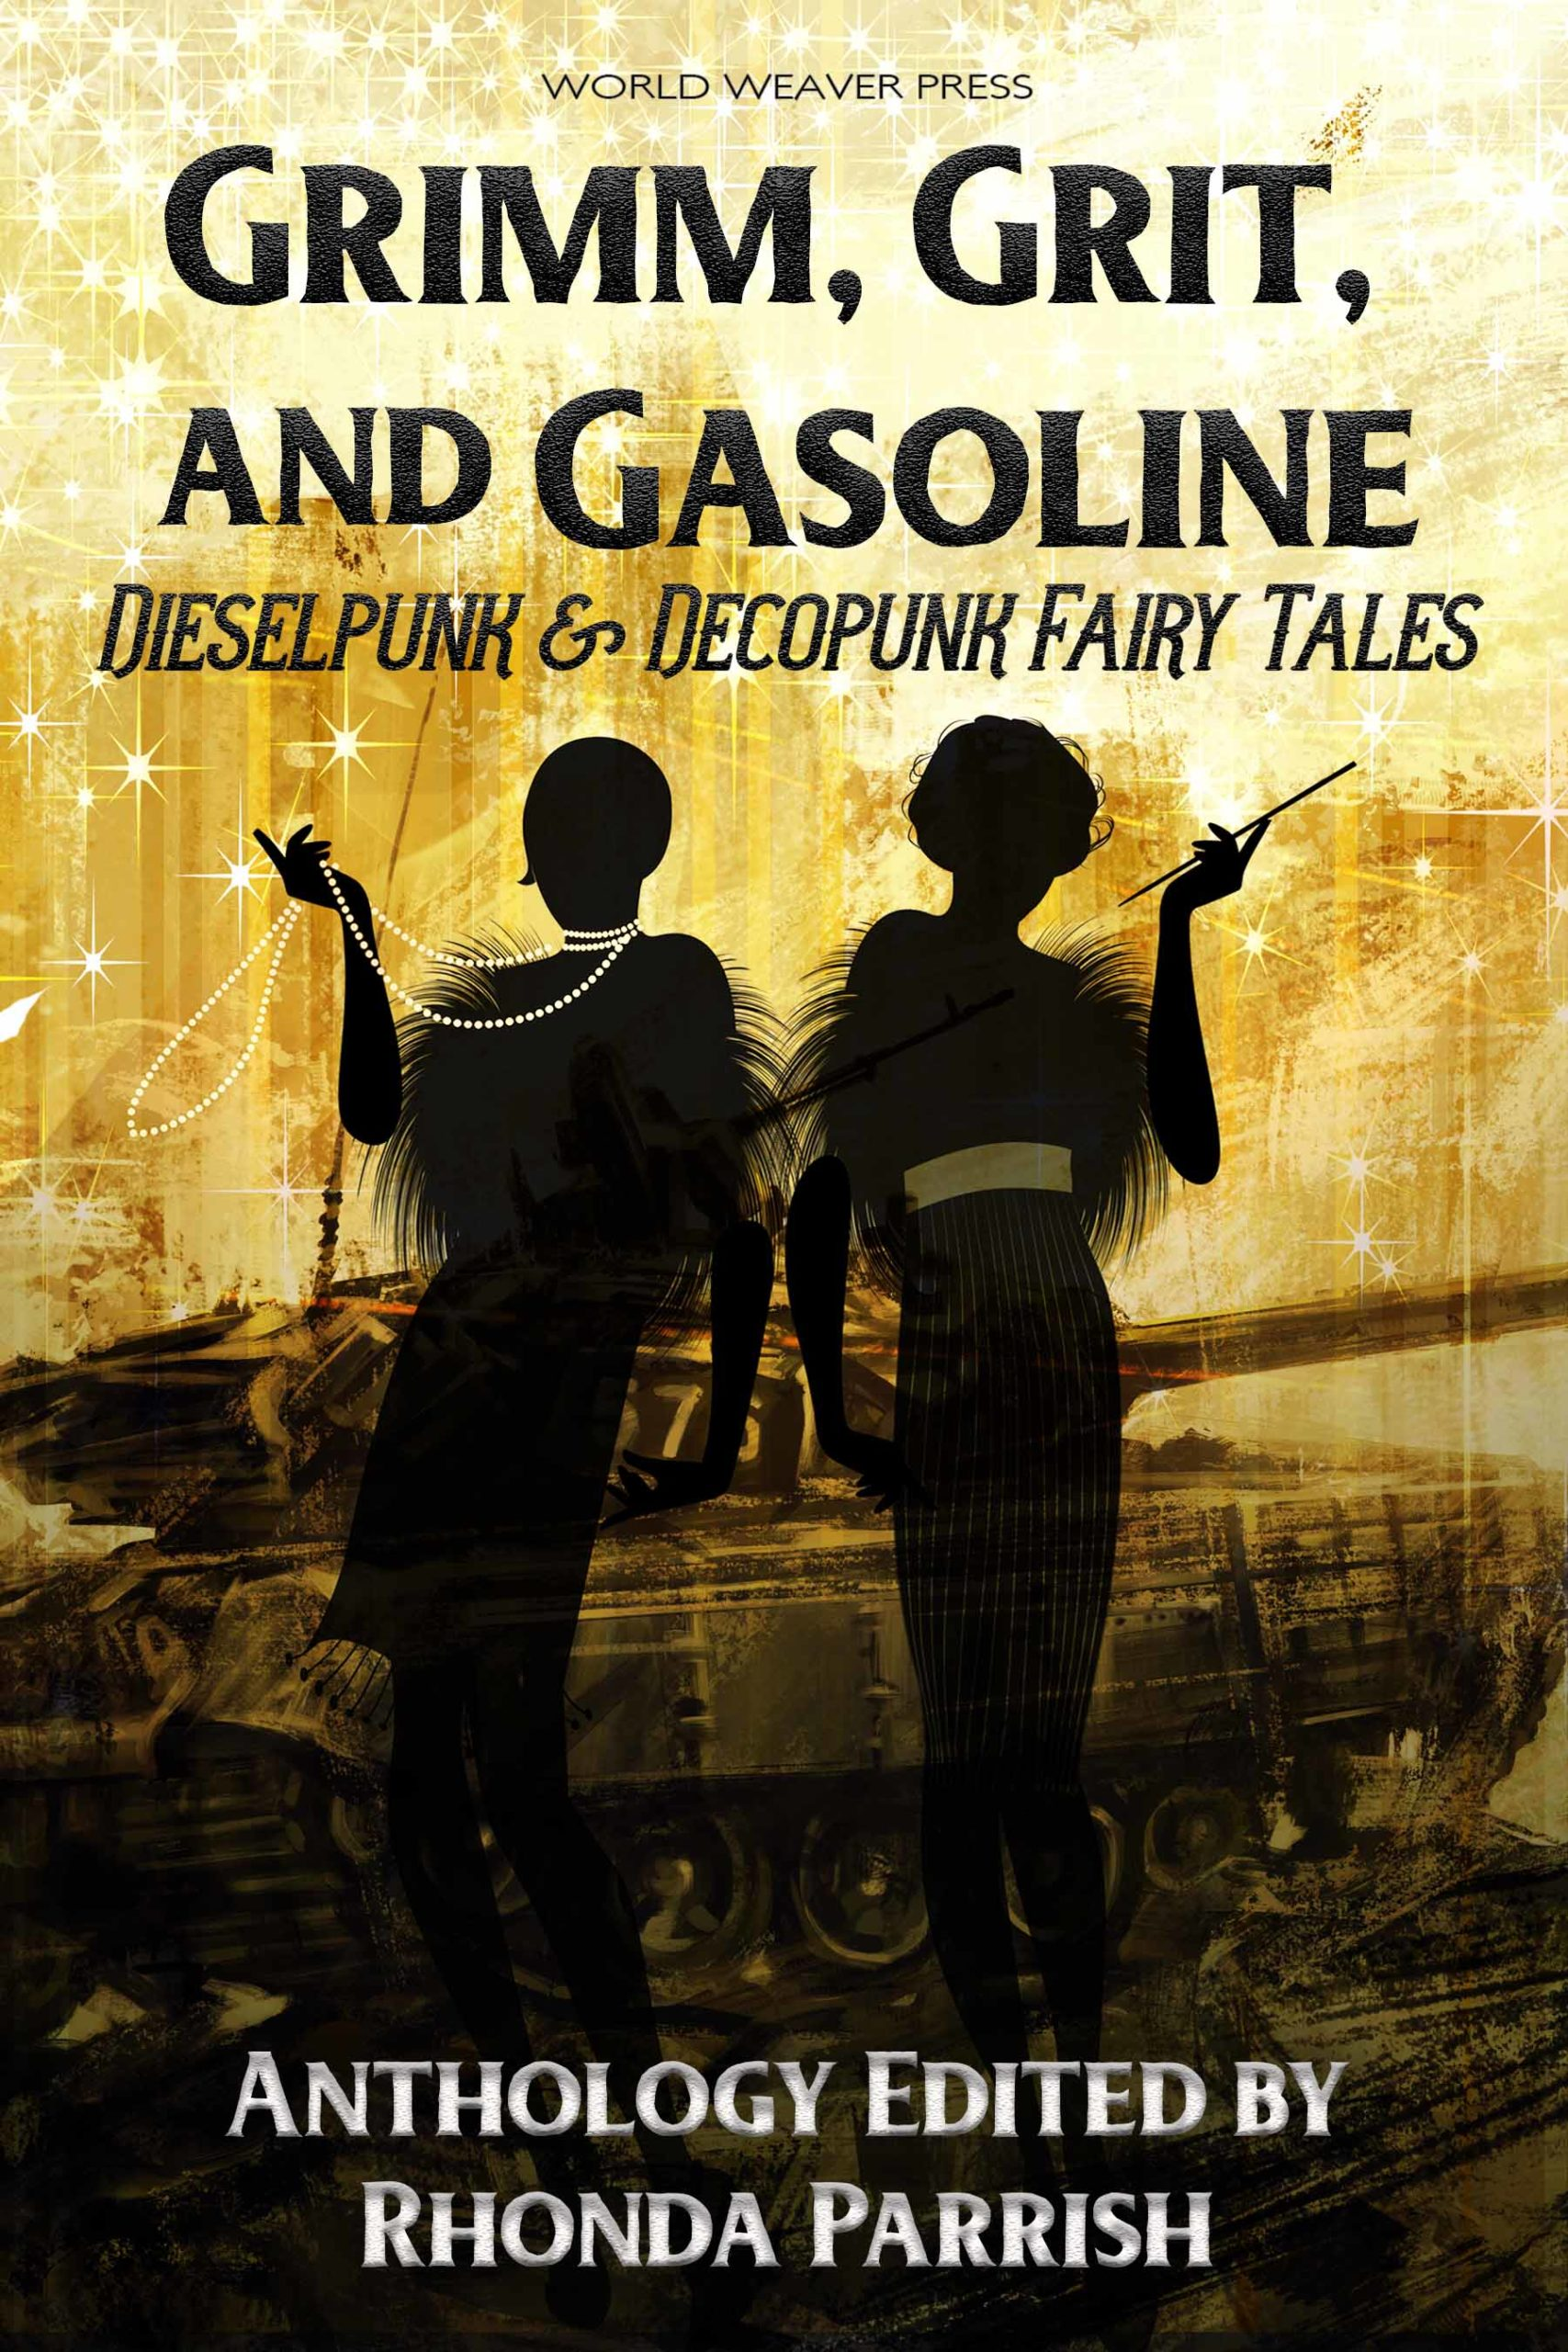 Grimm, Grit and Gasoline -- dieselpunk and deocpunk fairy tales